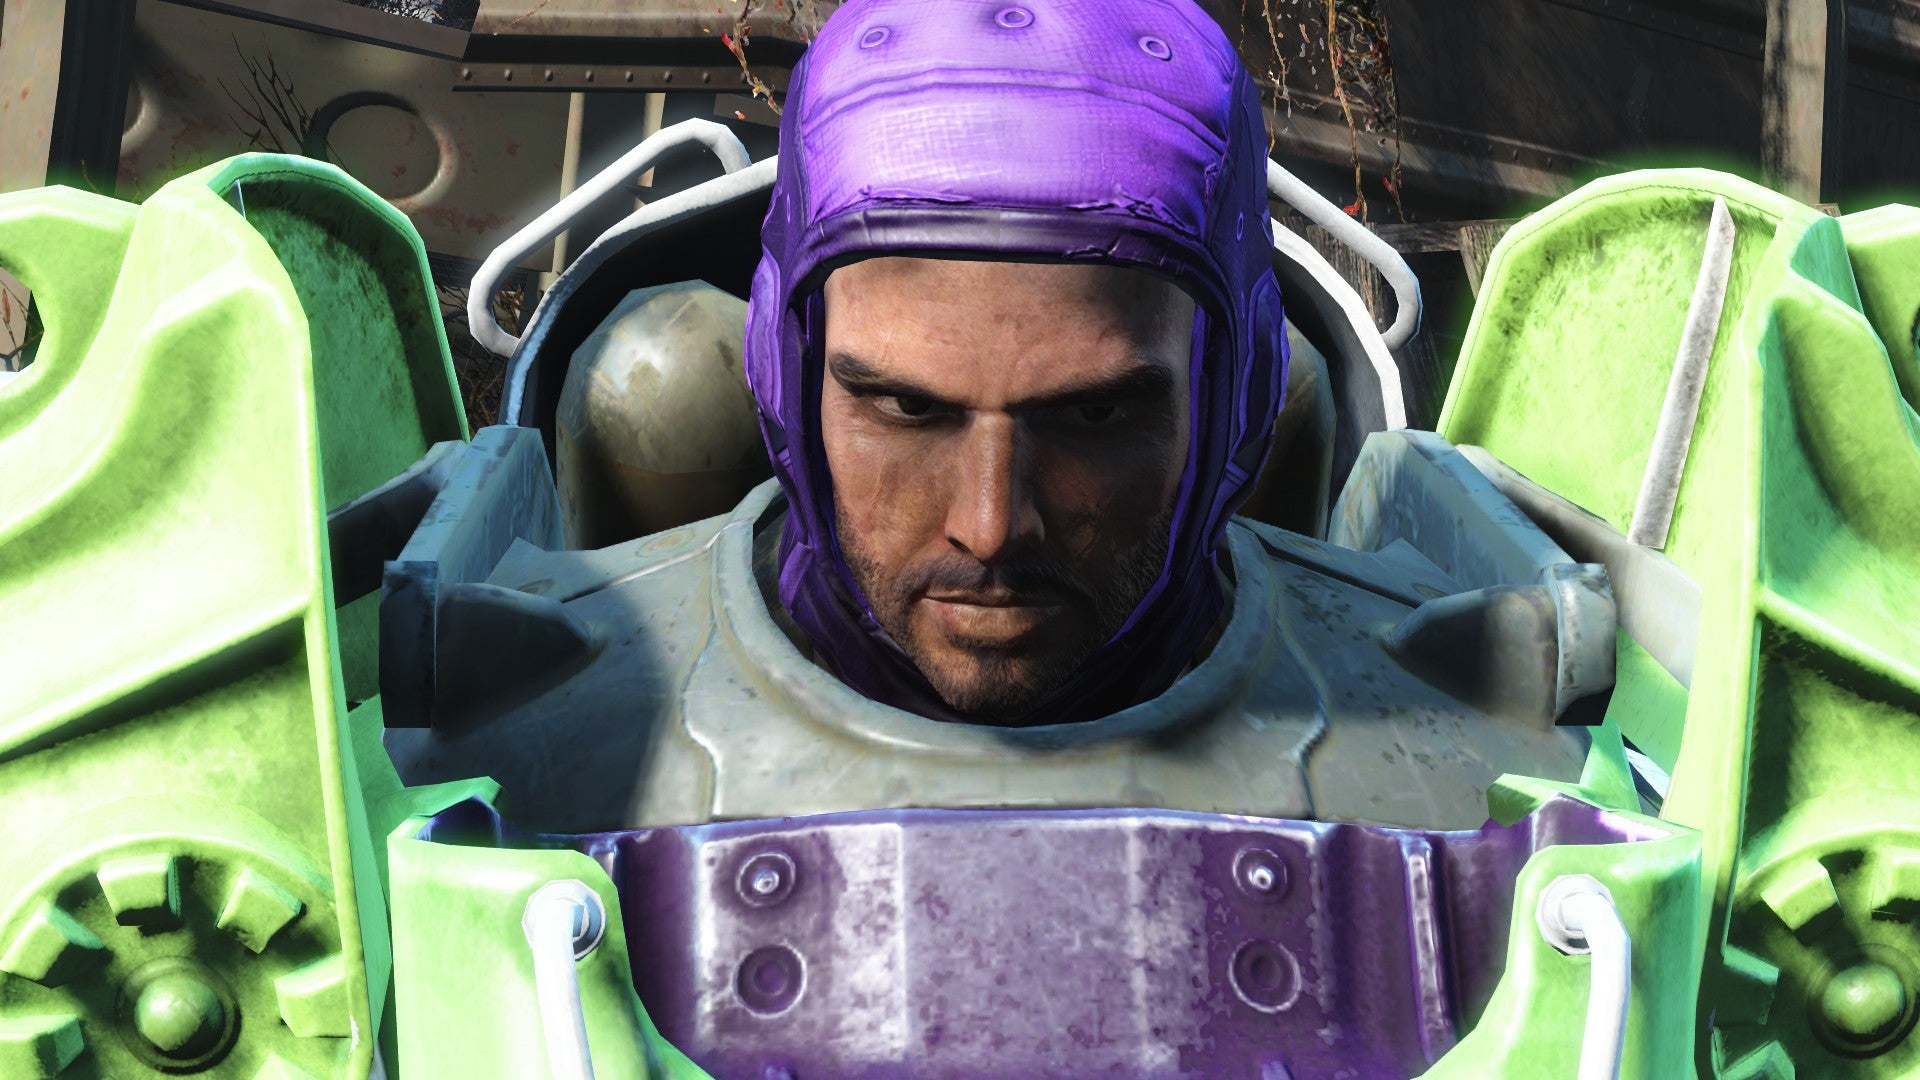 Buzz Lightyear Is The Hero Fallout 4 Deserves